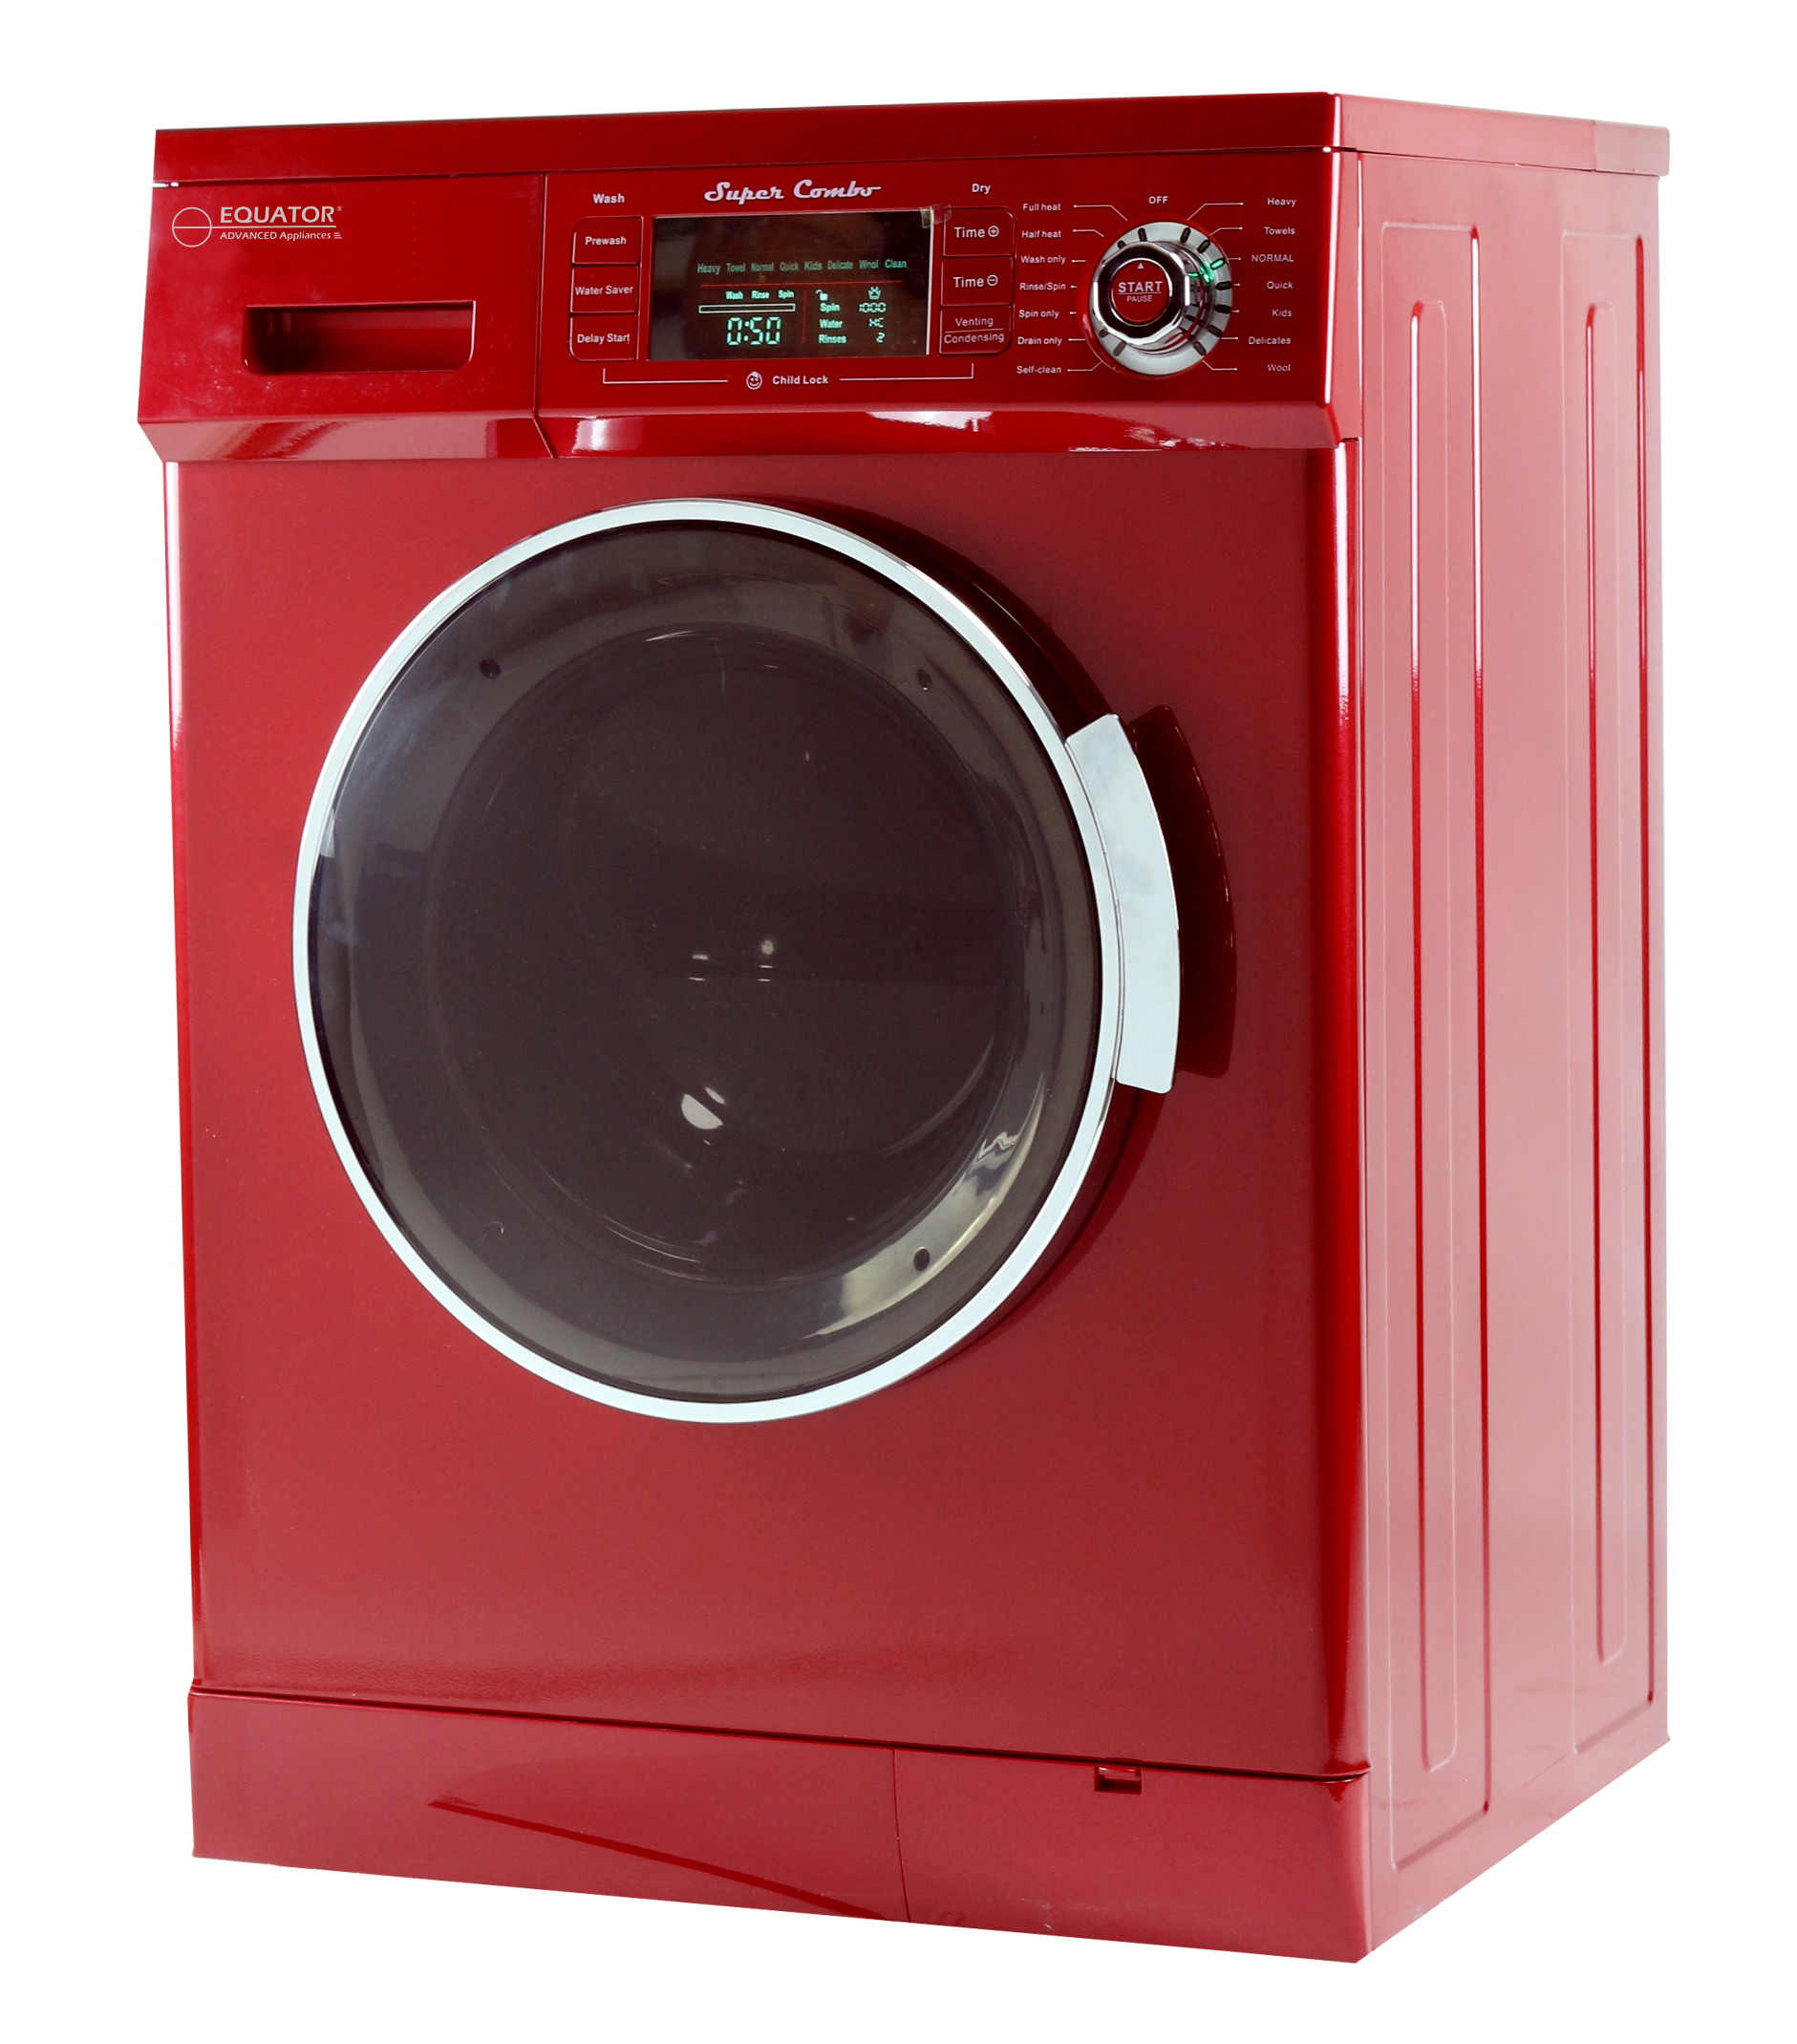 Equator 1.57 Cu. Ft. Compact 2013 Convertible Super Combo Washer with Venting/Condensing Drying in Merlot